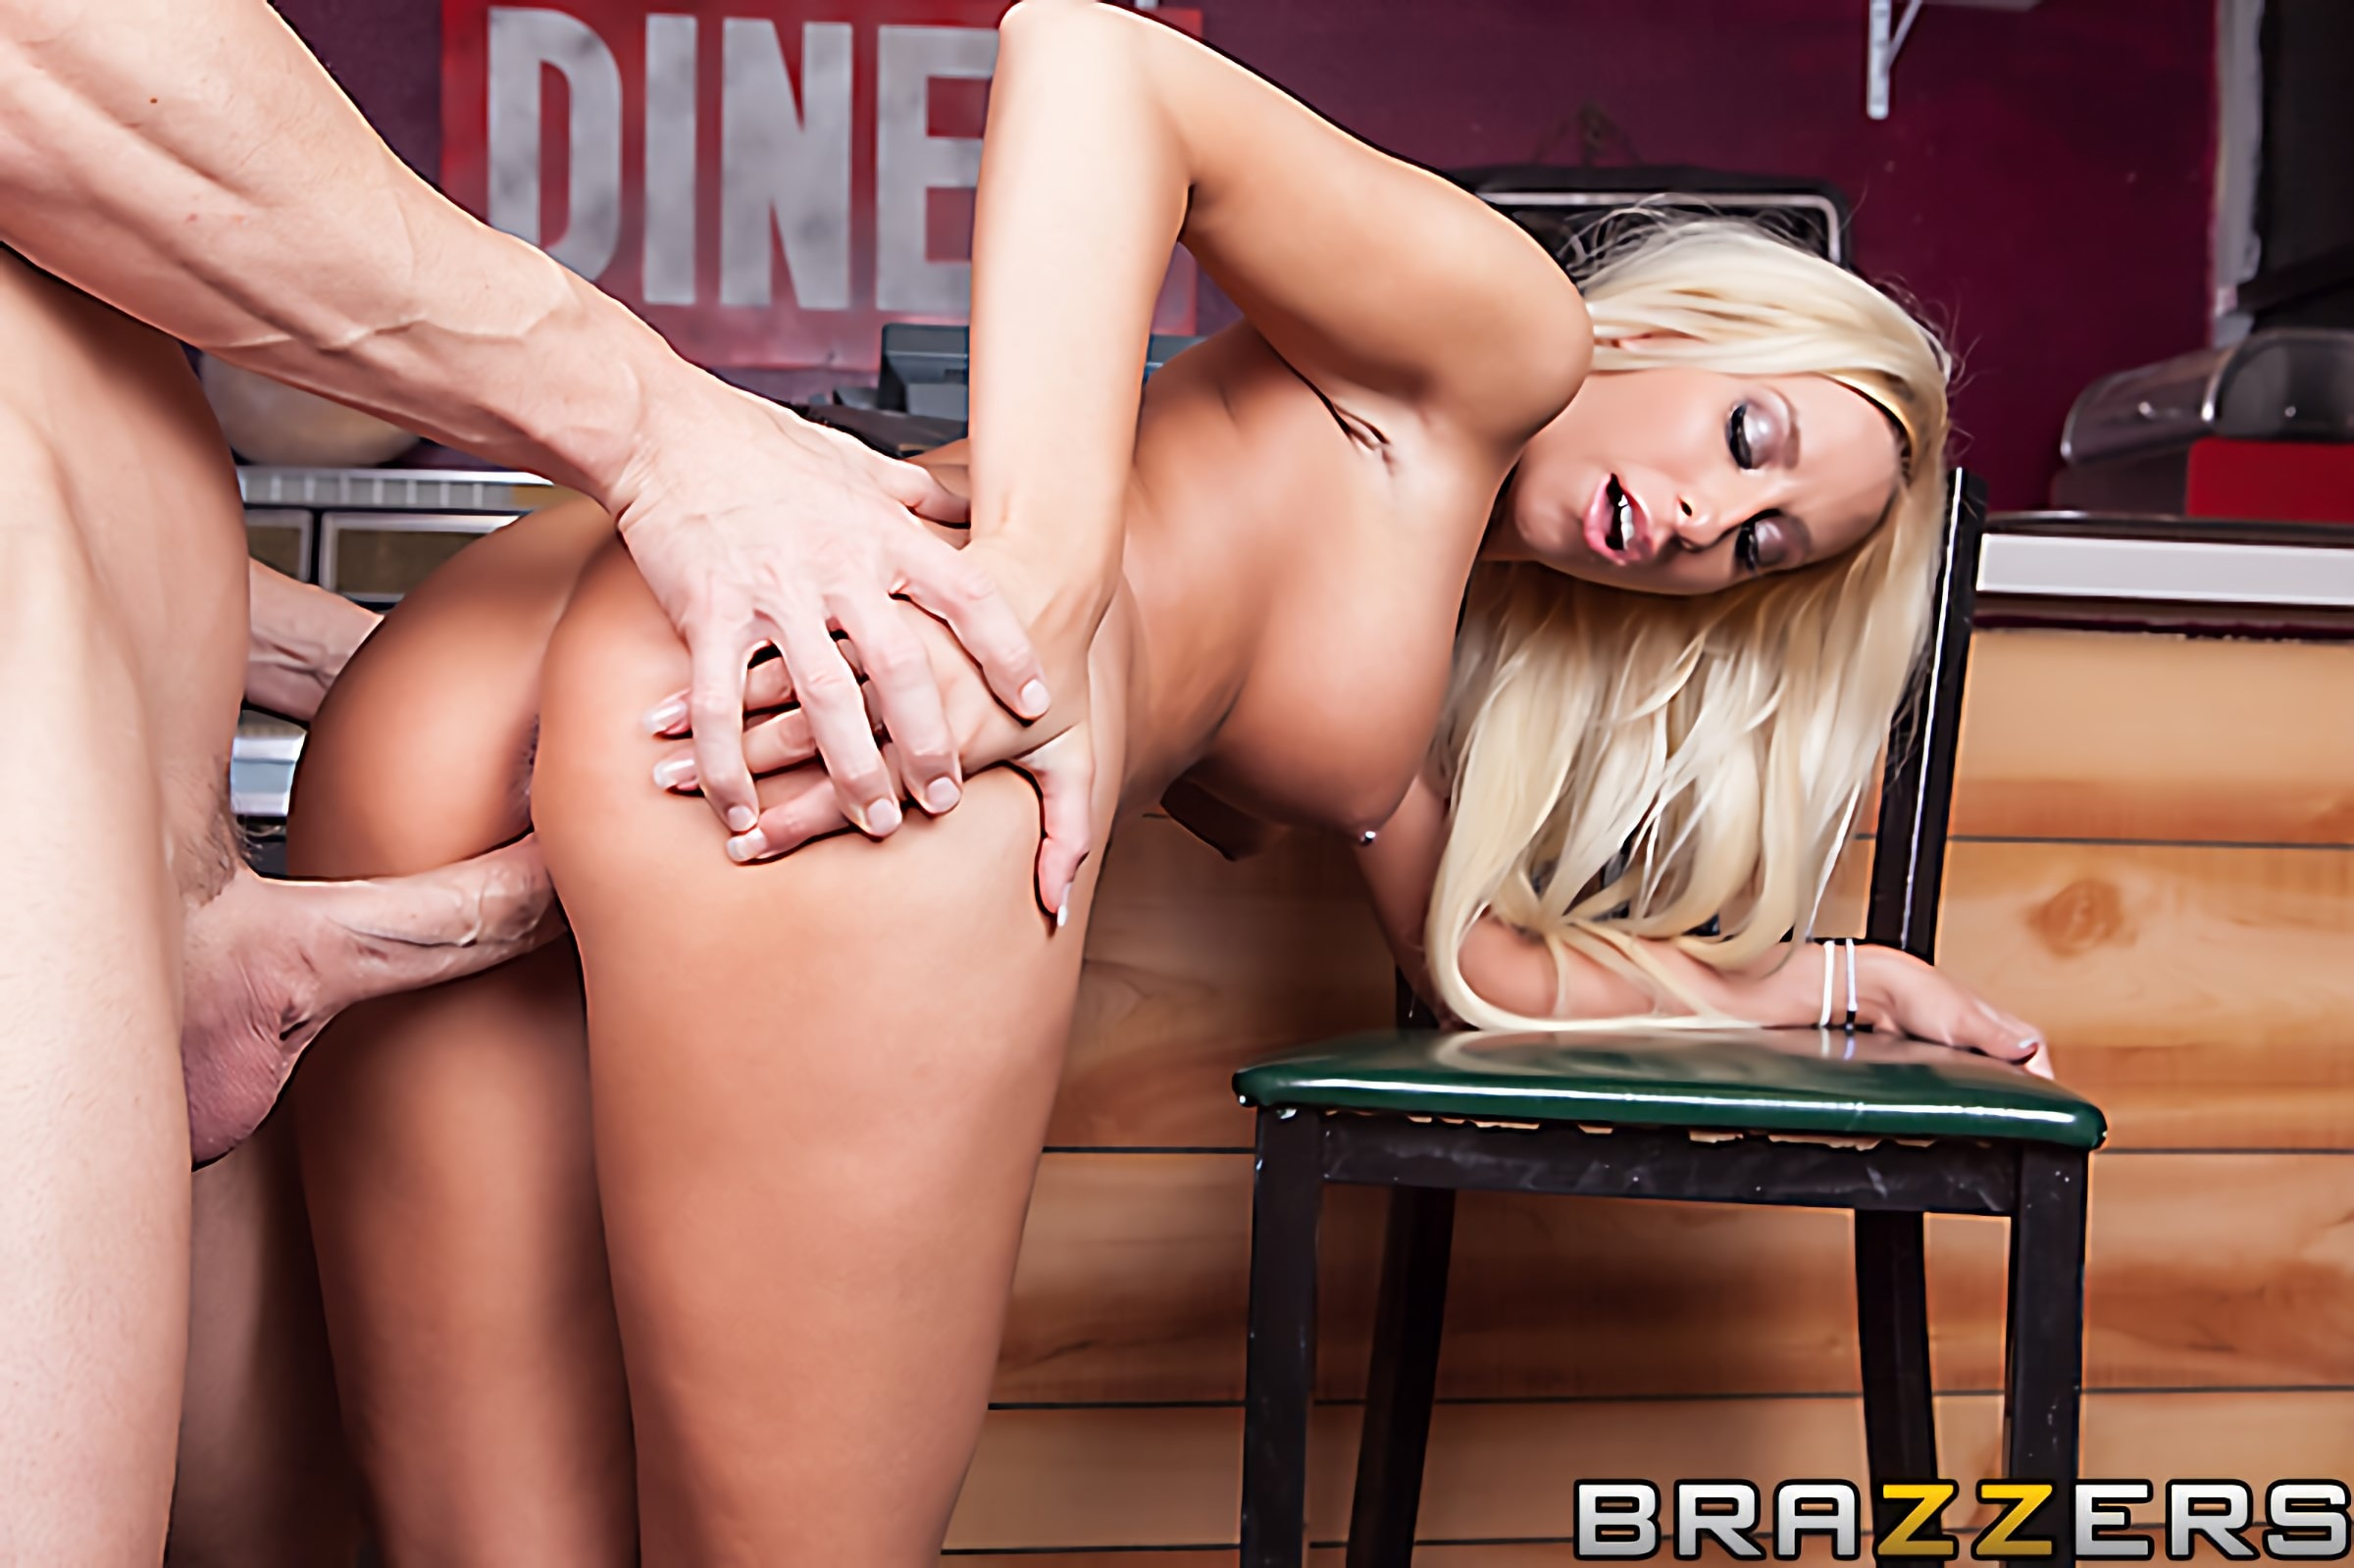 Brazzers 'ZZ- The Last Man of the Acockalypse (First Time Anal)' starring Brooke Fox (Photo 5)